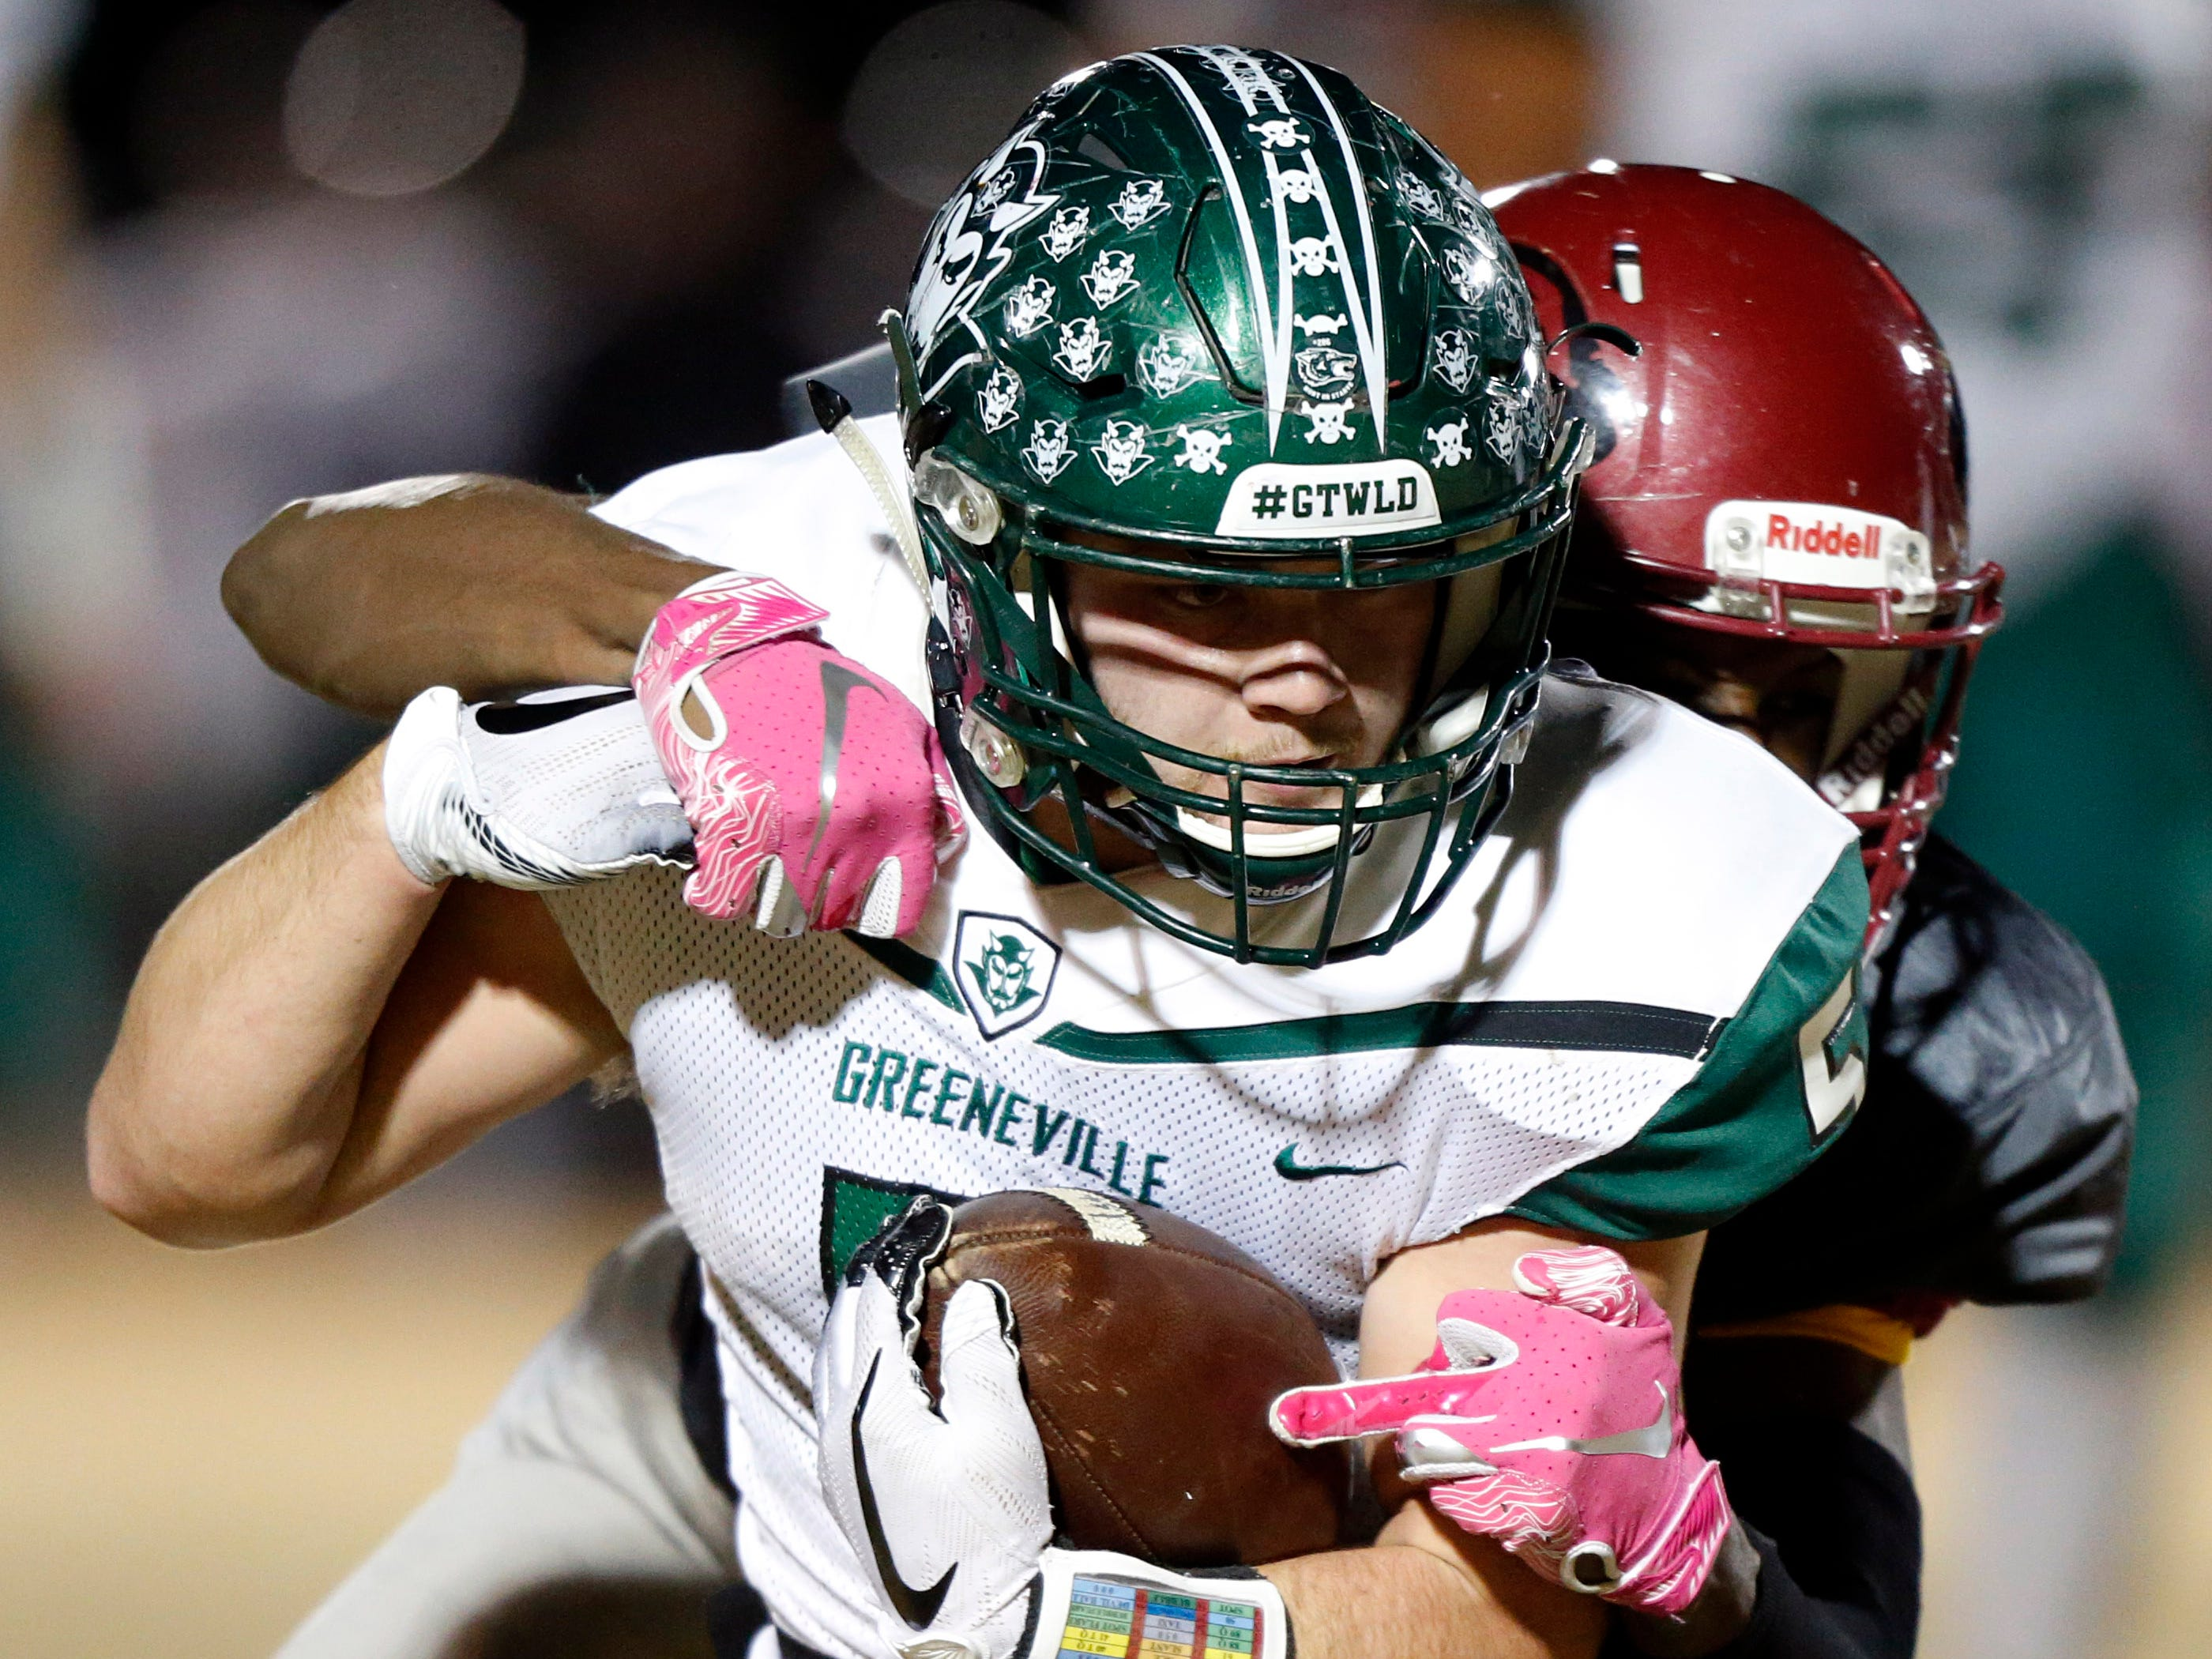 Greeneville's Ty Boyd is tackled from behind by a Maplewood defender during their game Friday, Nov. 23, 2018, in Nashville, TN.